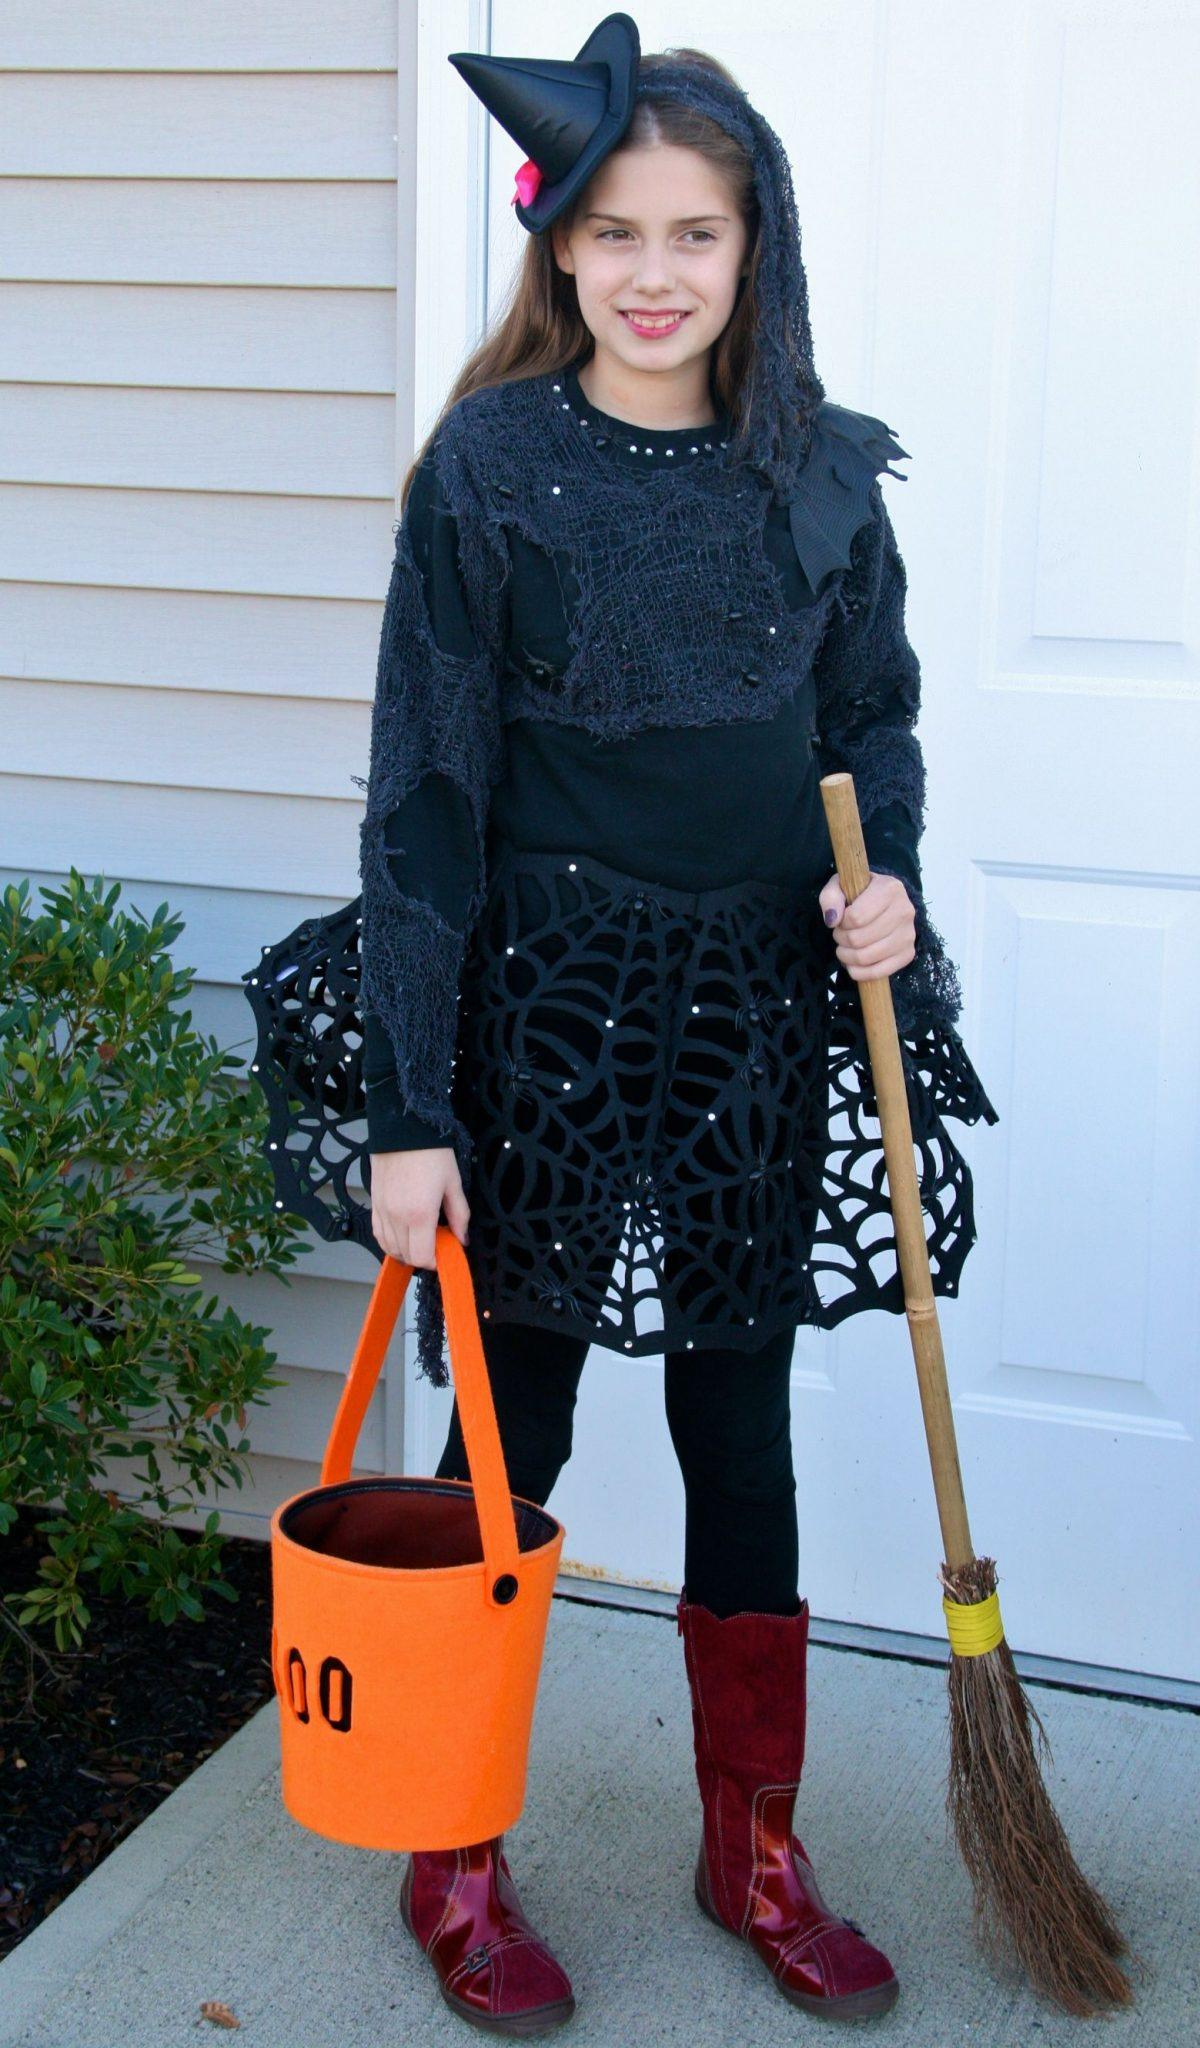 designer witch costume, DIY witch costume for Halloween, witch costume for tween girl